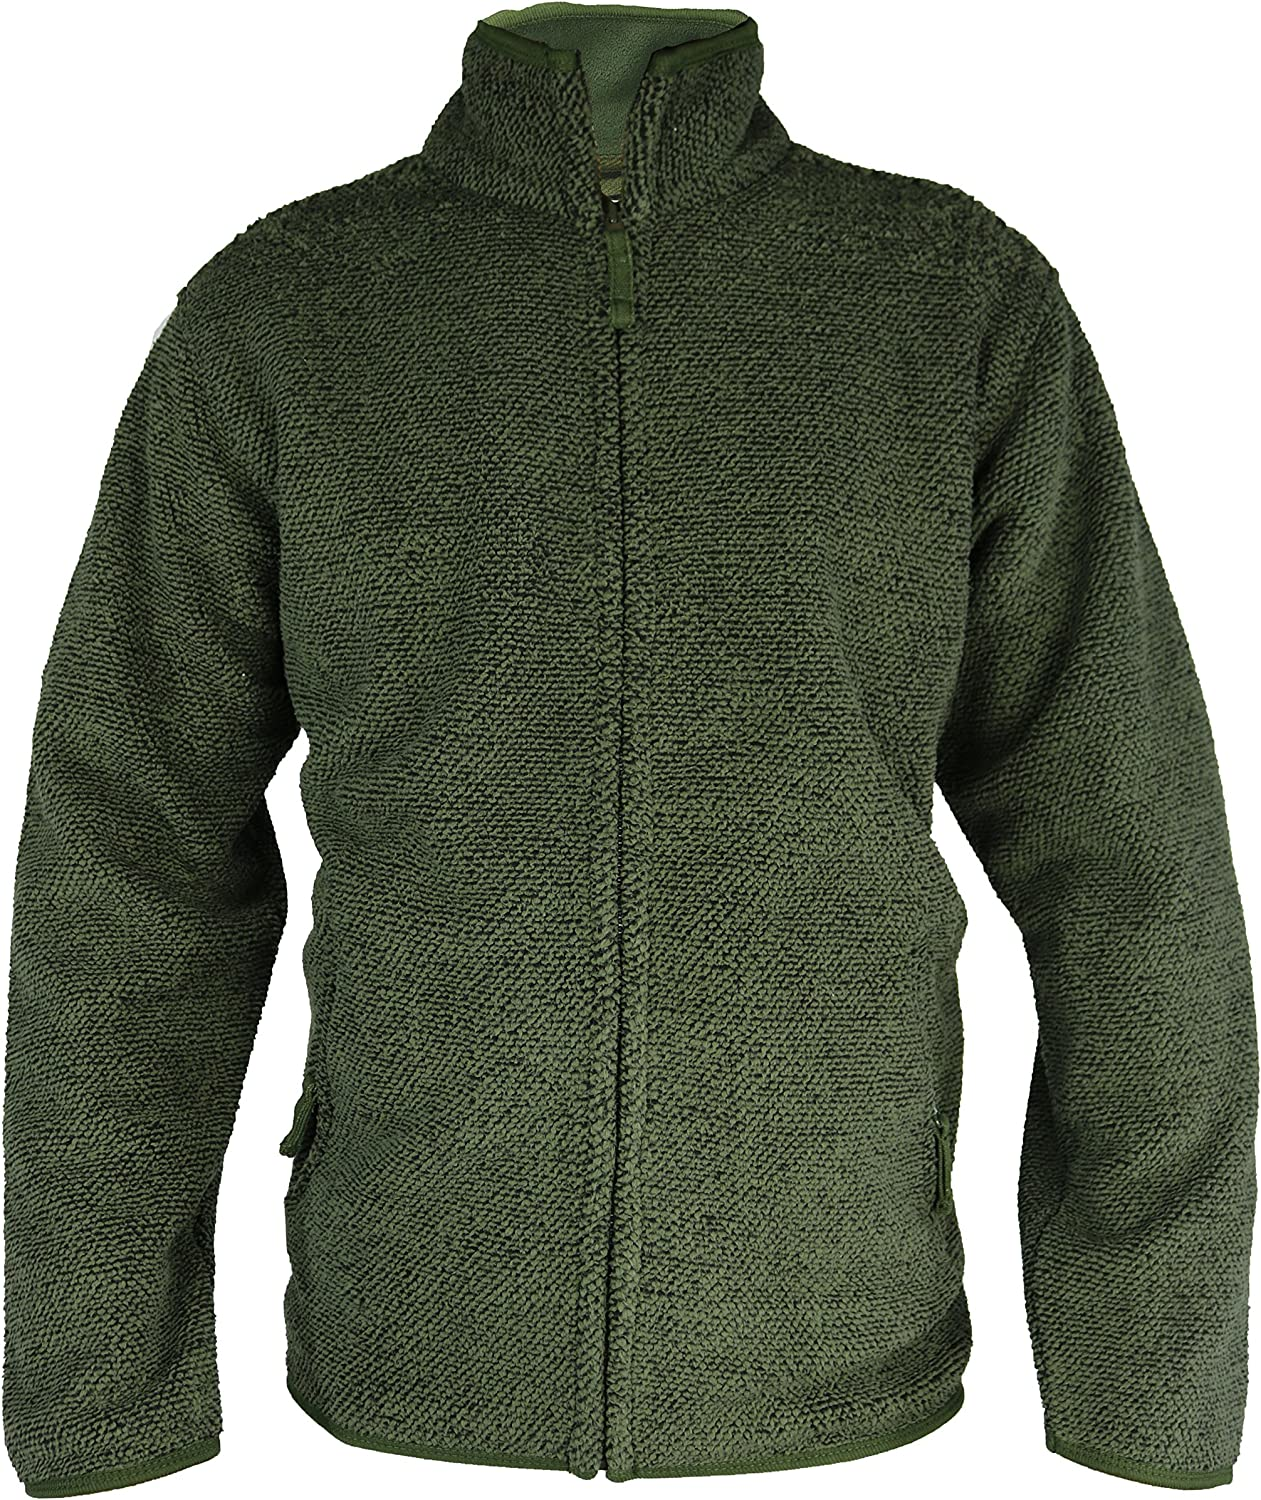 Soft Textured Outer Material with Heavy Inner Fleece Winter Outdoor Woolly M-6XL Raphael Valencino All Thick Warm Paded Full Zipped Fleece Jacket with 2 Front Zip Pockets